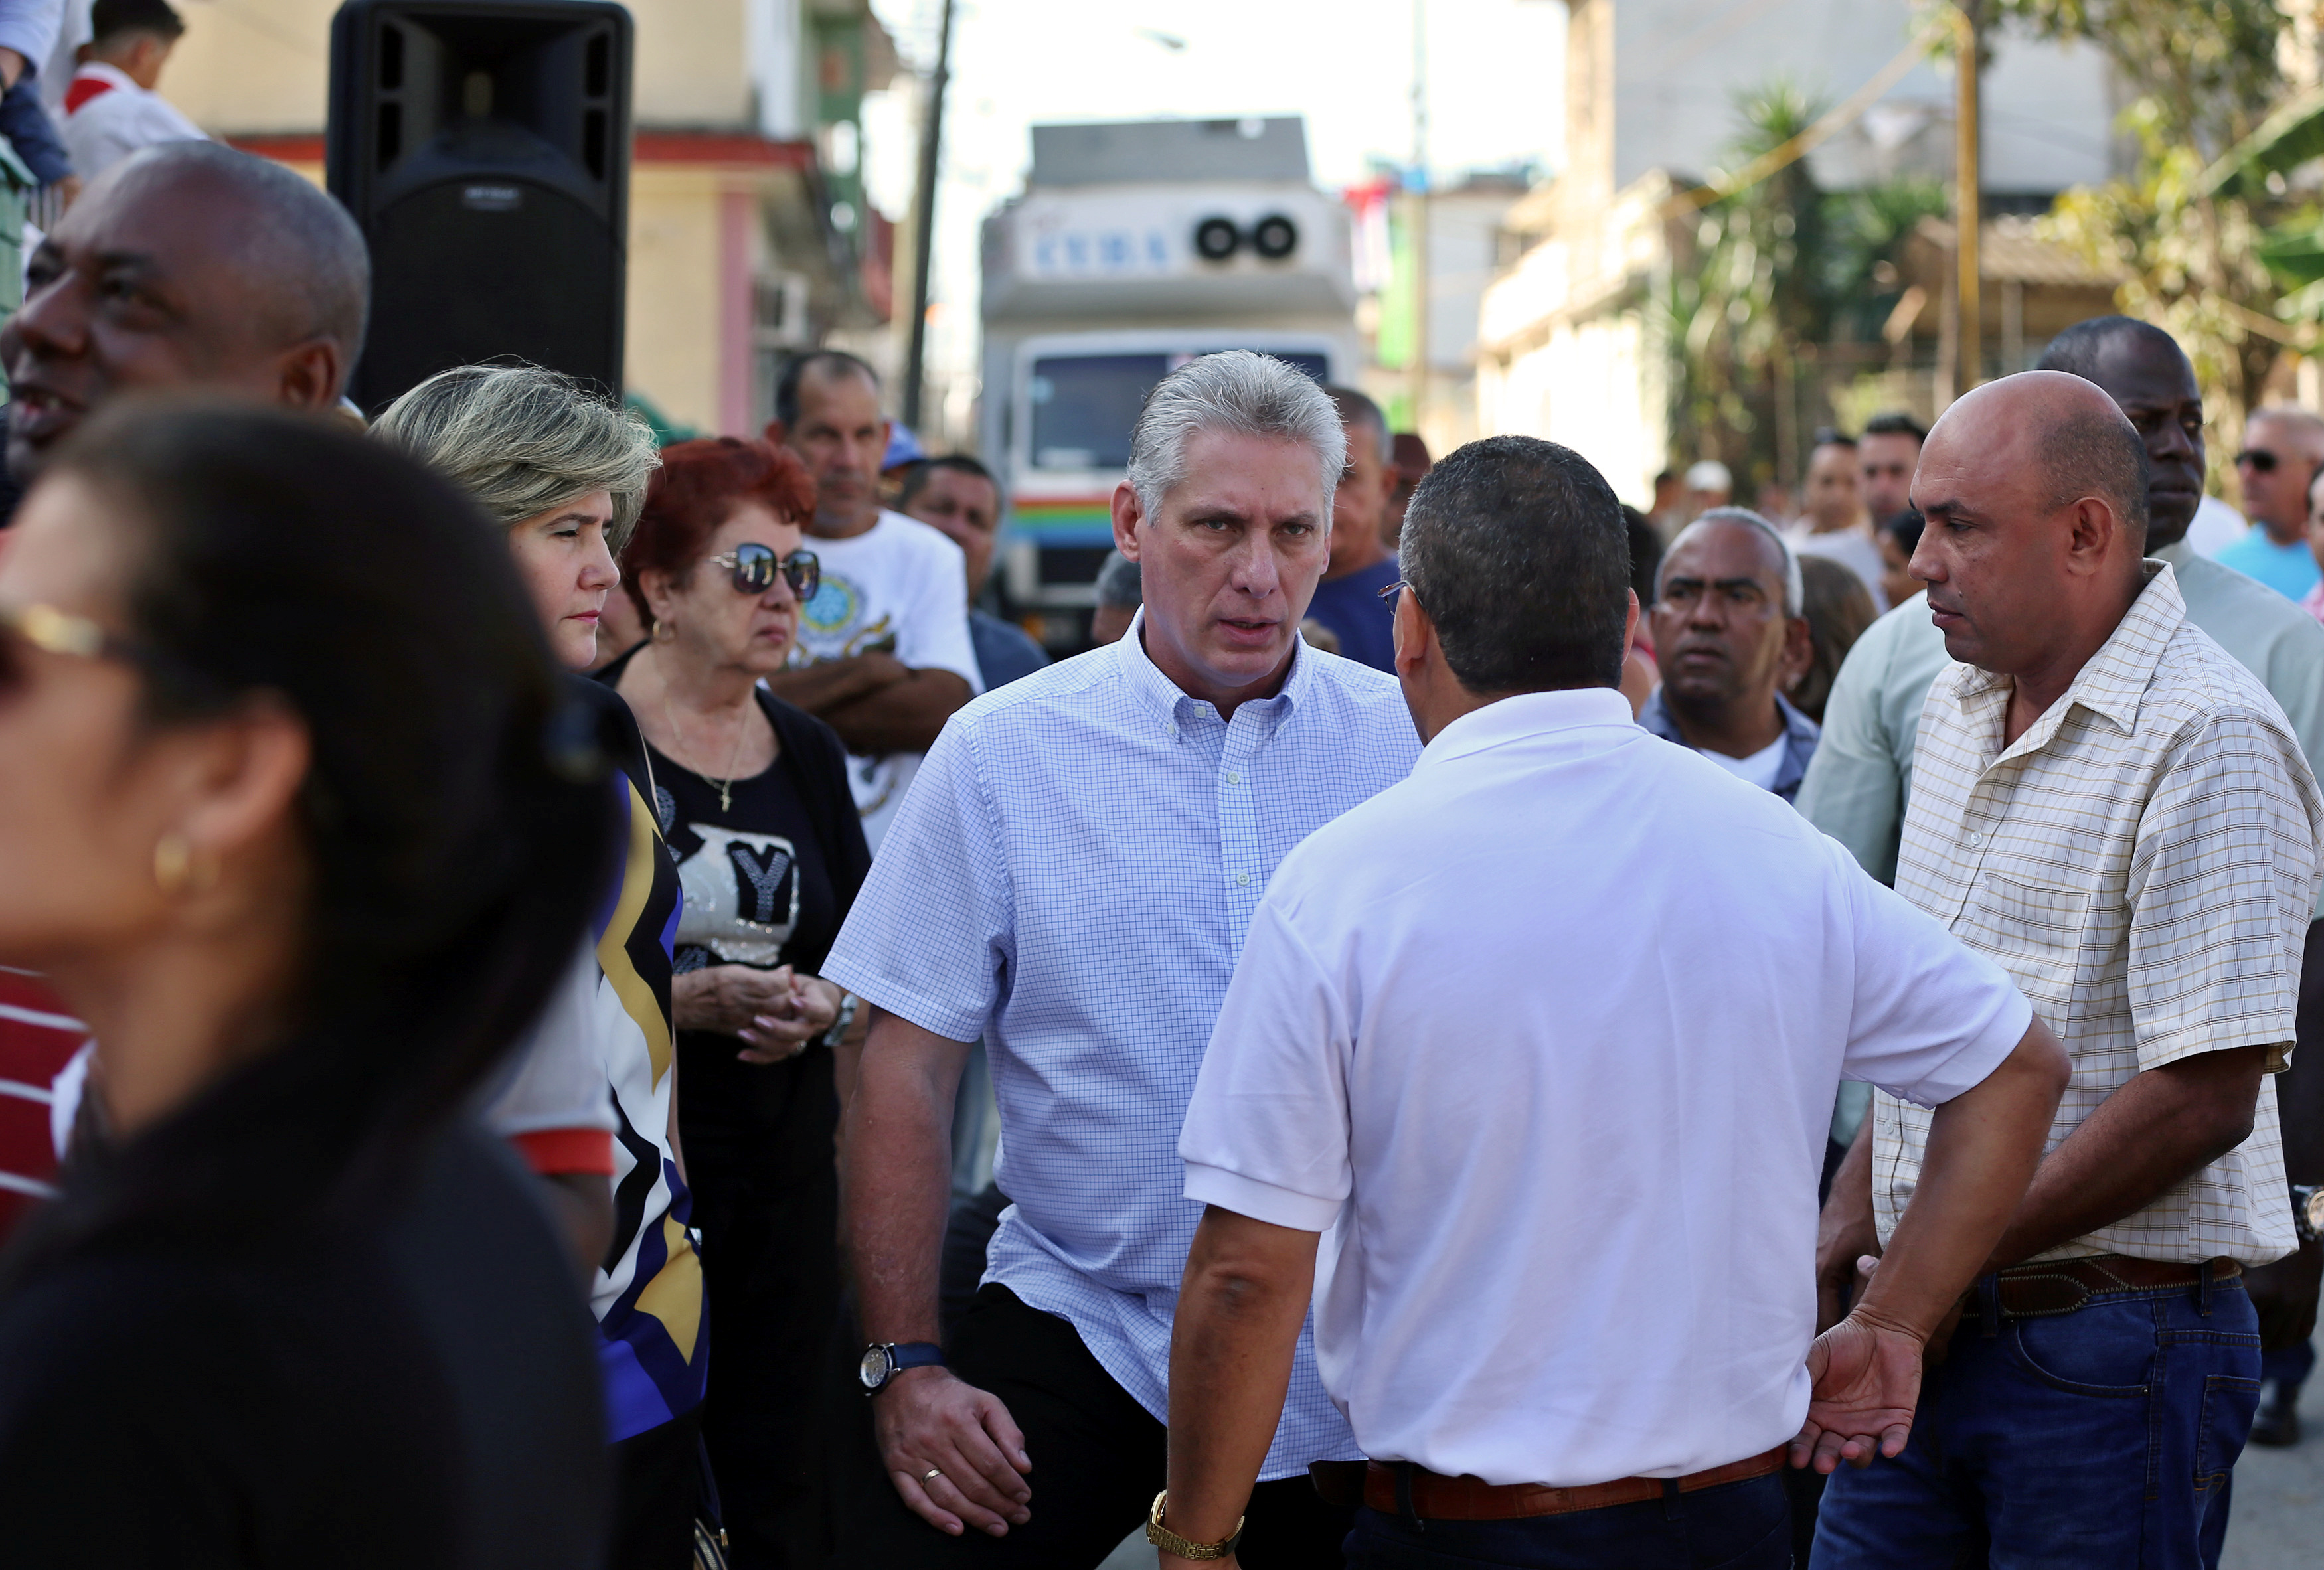 Cuba's First Vice-President Miguel Diaz-Canel talks with local residents before casting his vote during an election of candidates for the national and provincial assemblies, in Santa Clara, Cuba March 11, 2018. REUTERS/Alejandro Ernesto/Pool - RC18D0C254B0